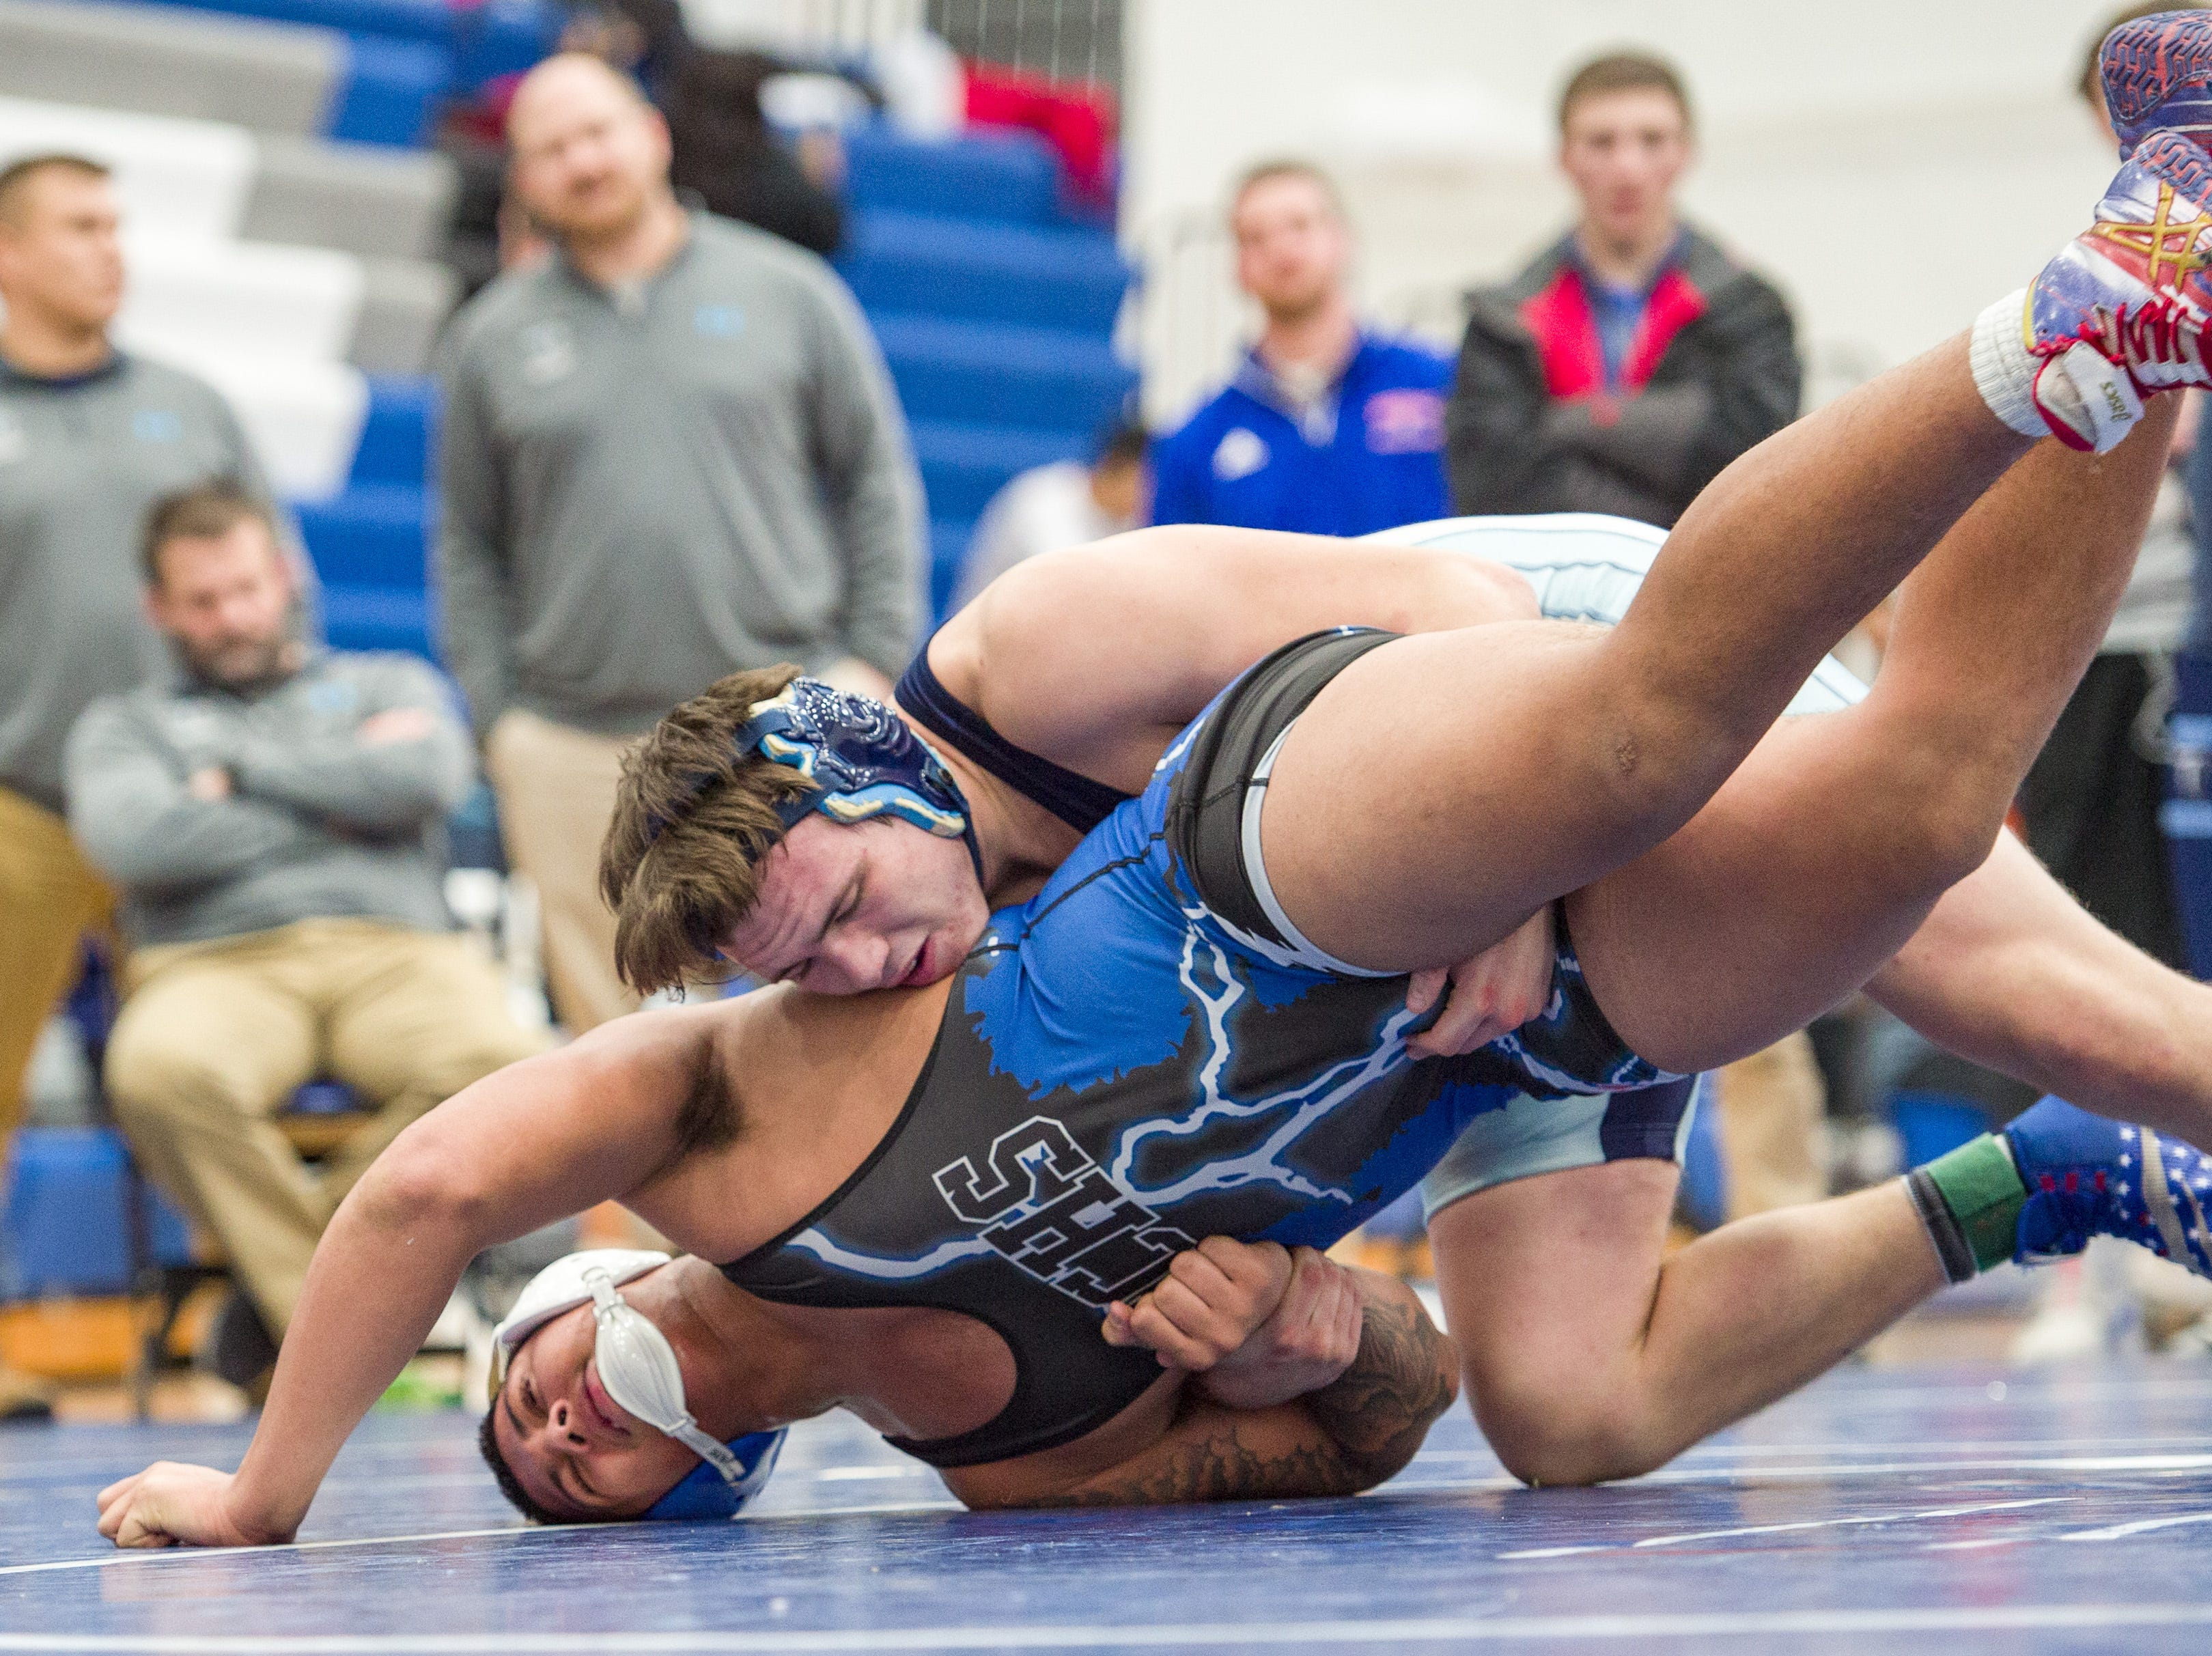 Perry Meridian High School wrestler Austin Lane, right, competes with Franklin Central High School's Deshawn Young in the 220-pound weight class. Franklin Central High School hosted the Marion County wrestling championships, Saturday, Dec. 15, 2018.